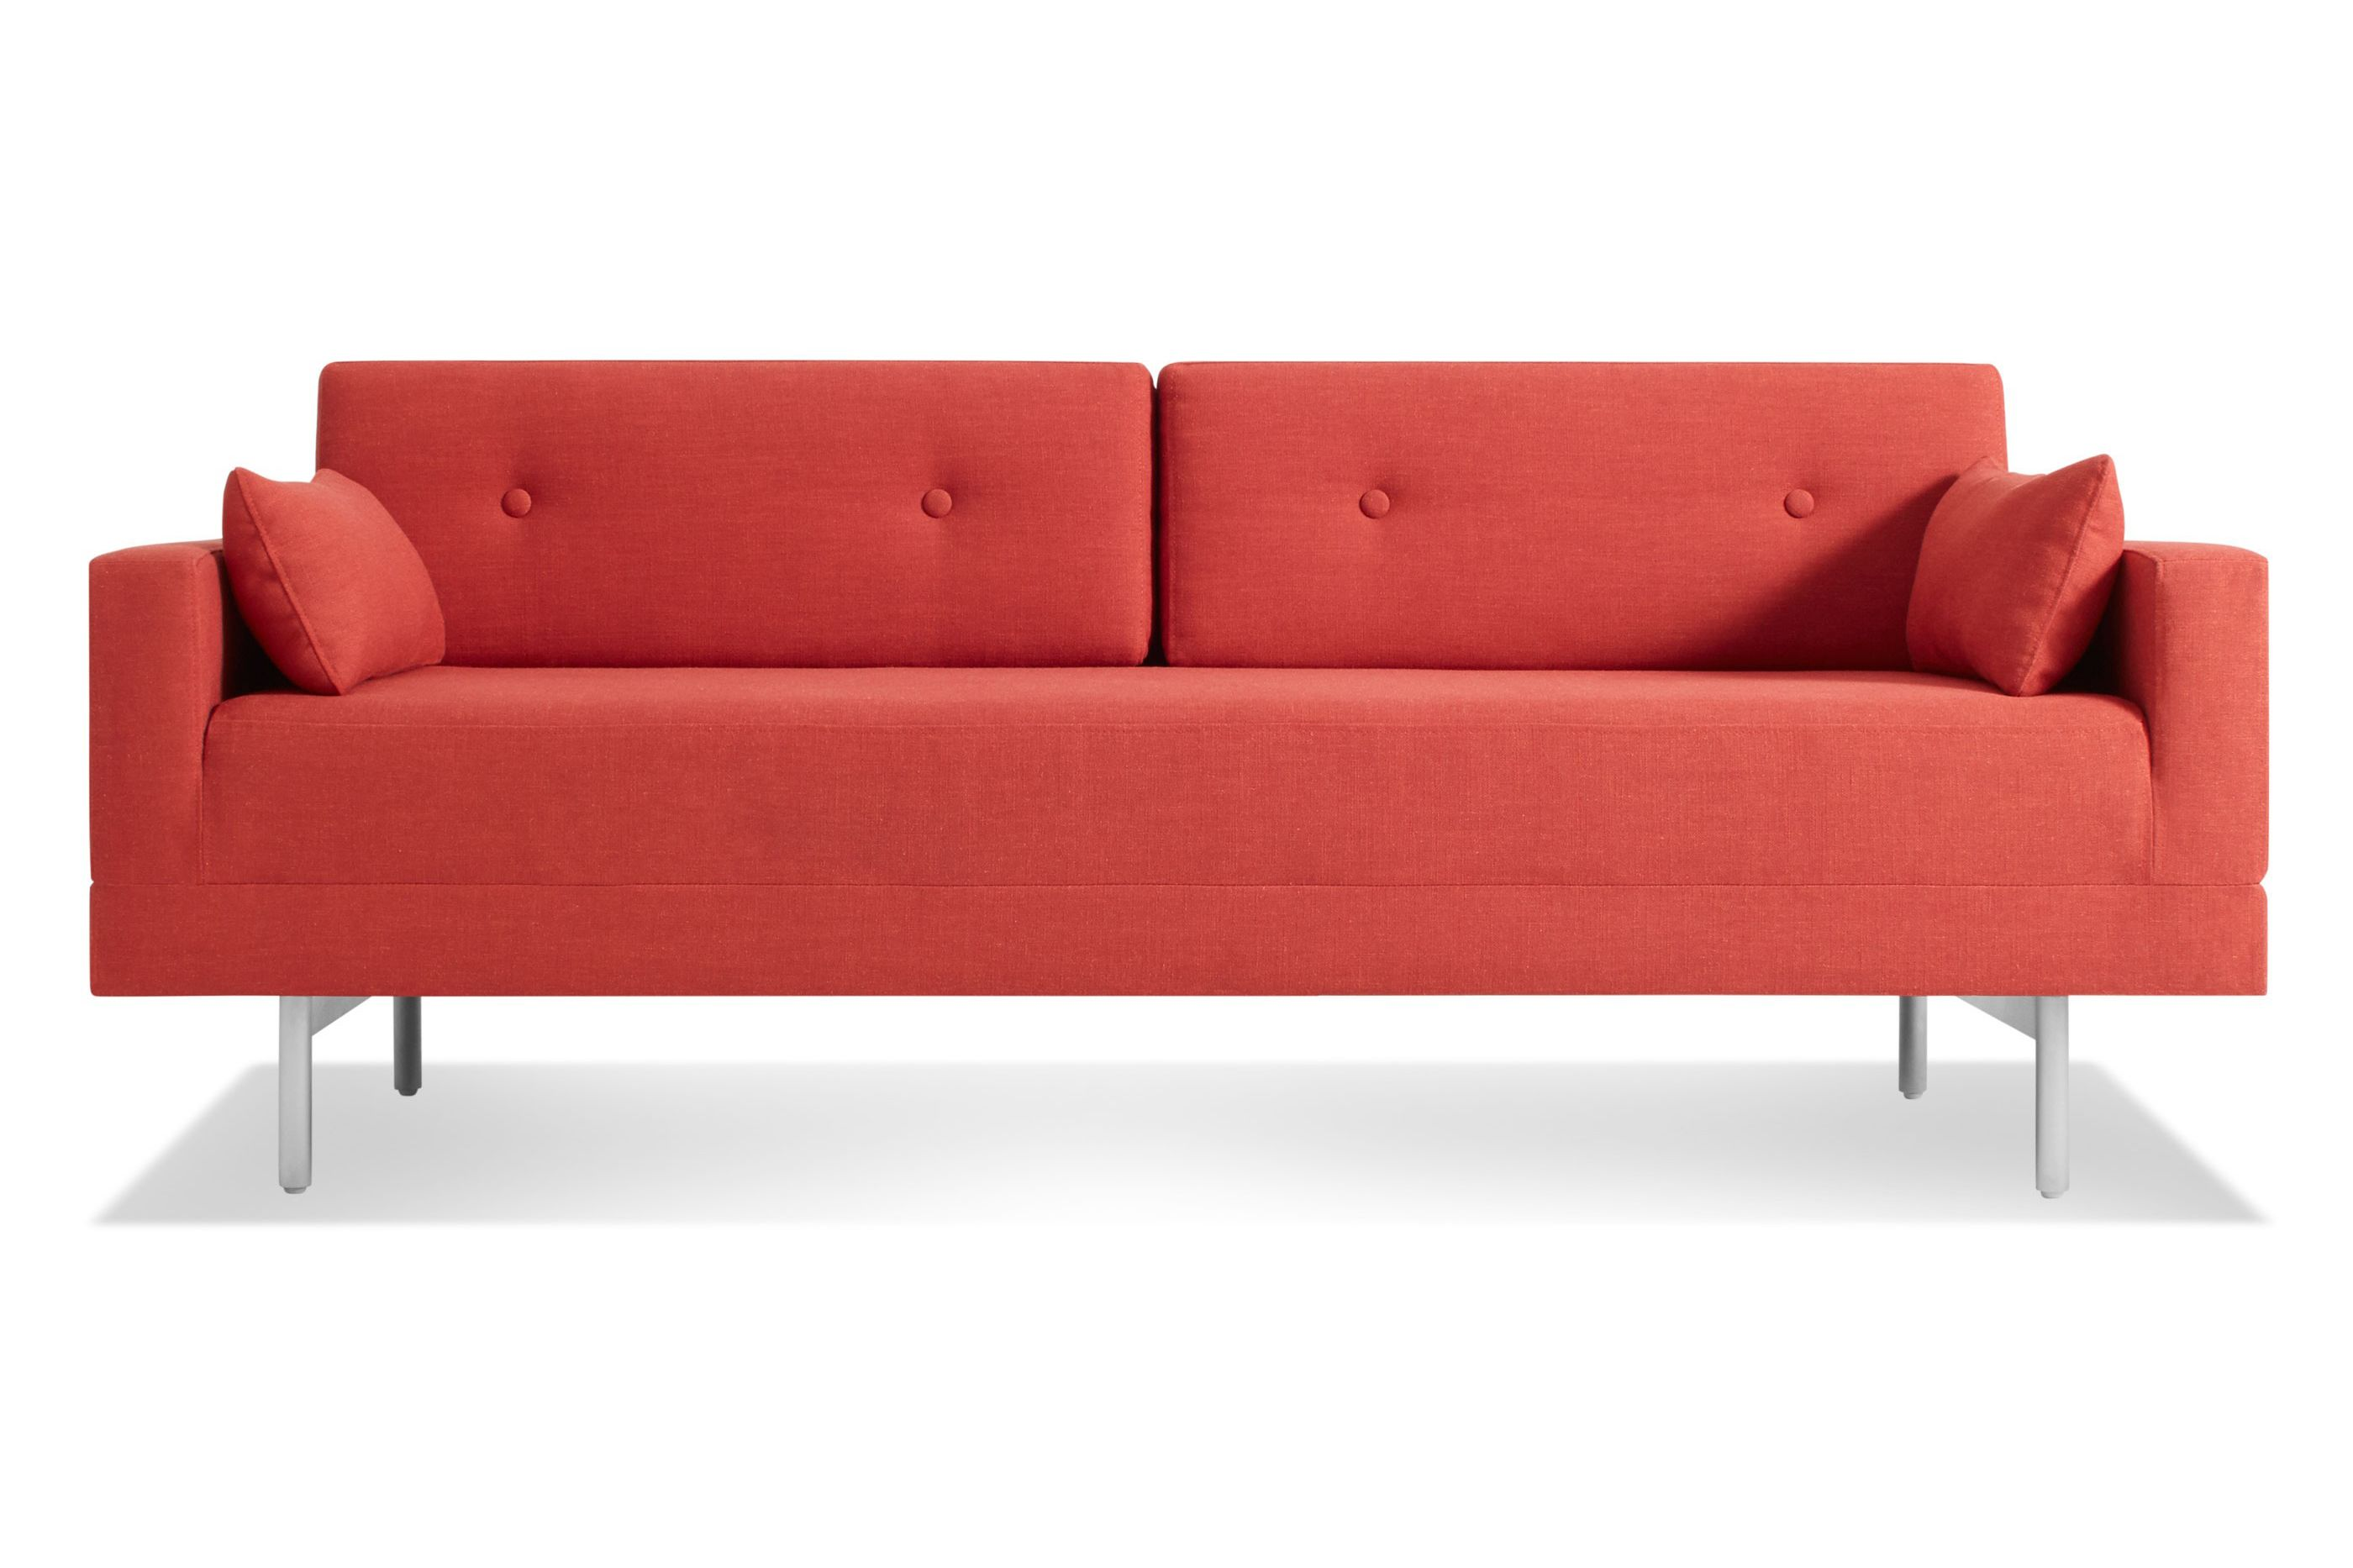 Most Comfortable Modern Sofa Bed Reviewed The Most Comfortable Sofas At Blu Dot Sofa By Peng